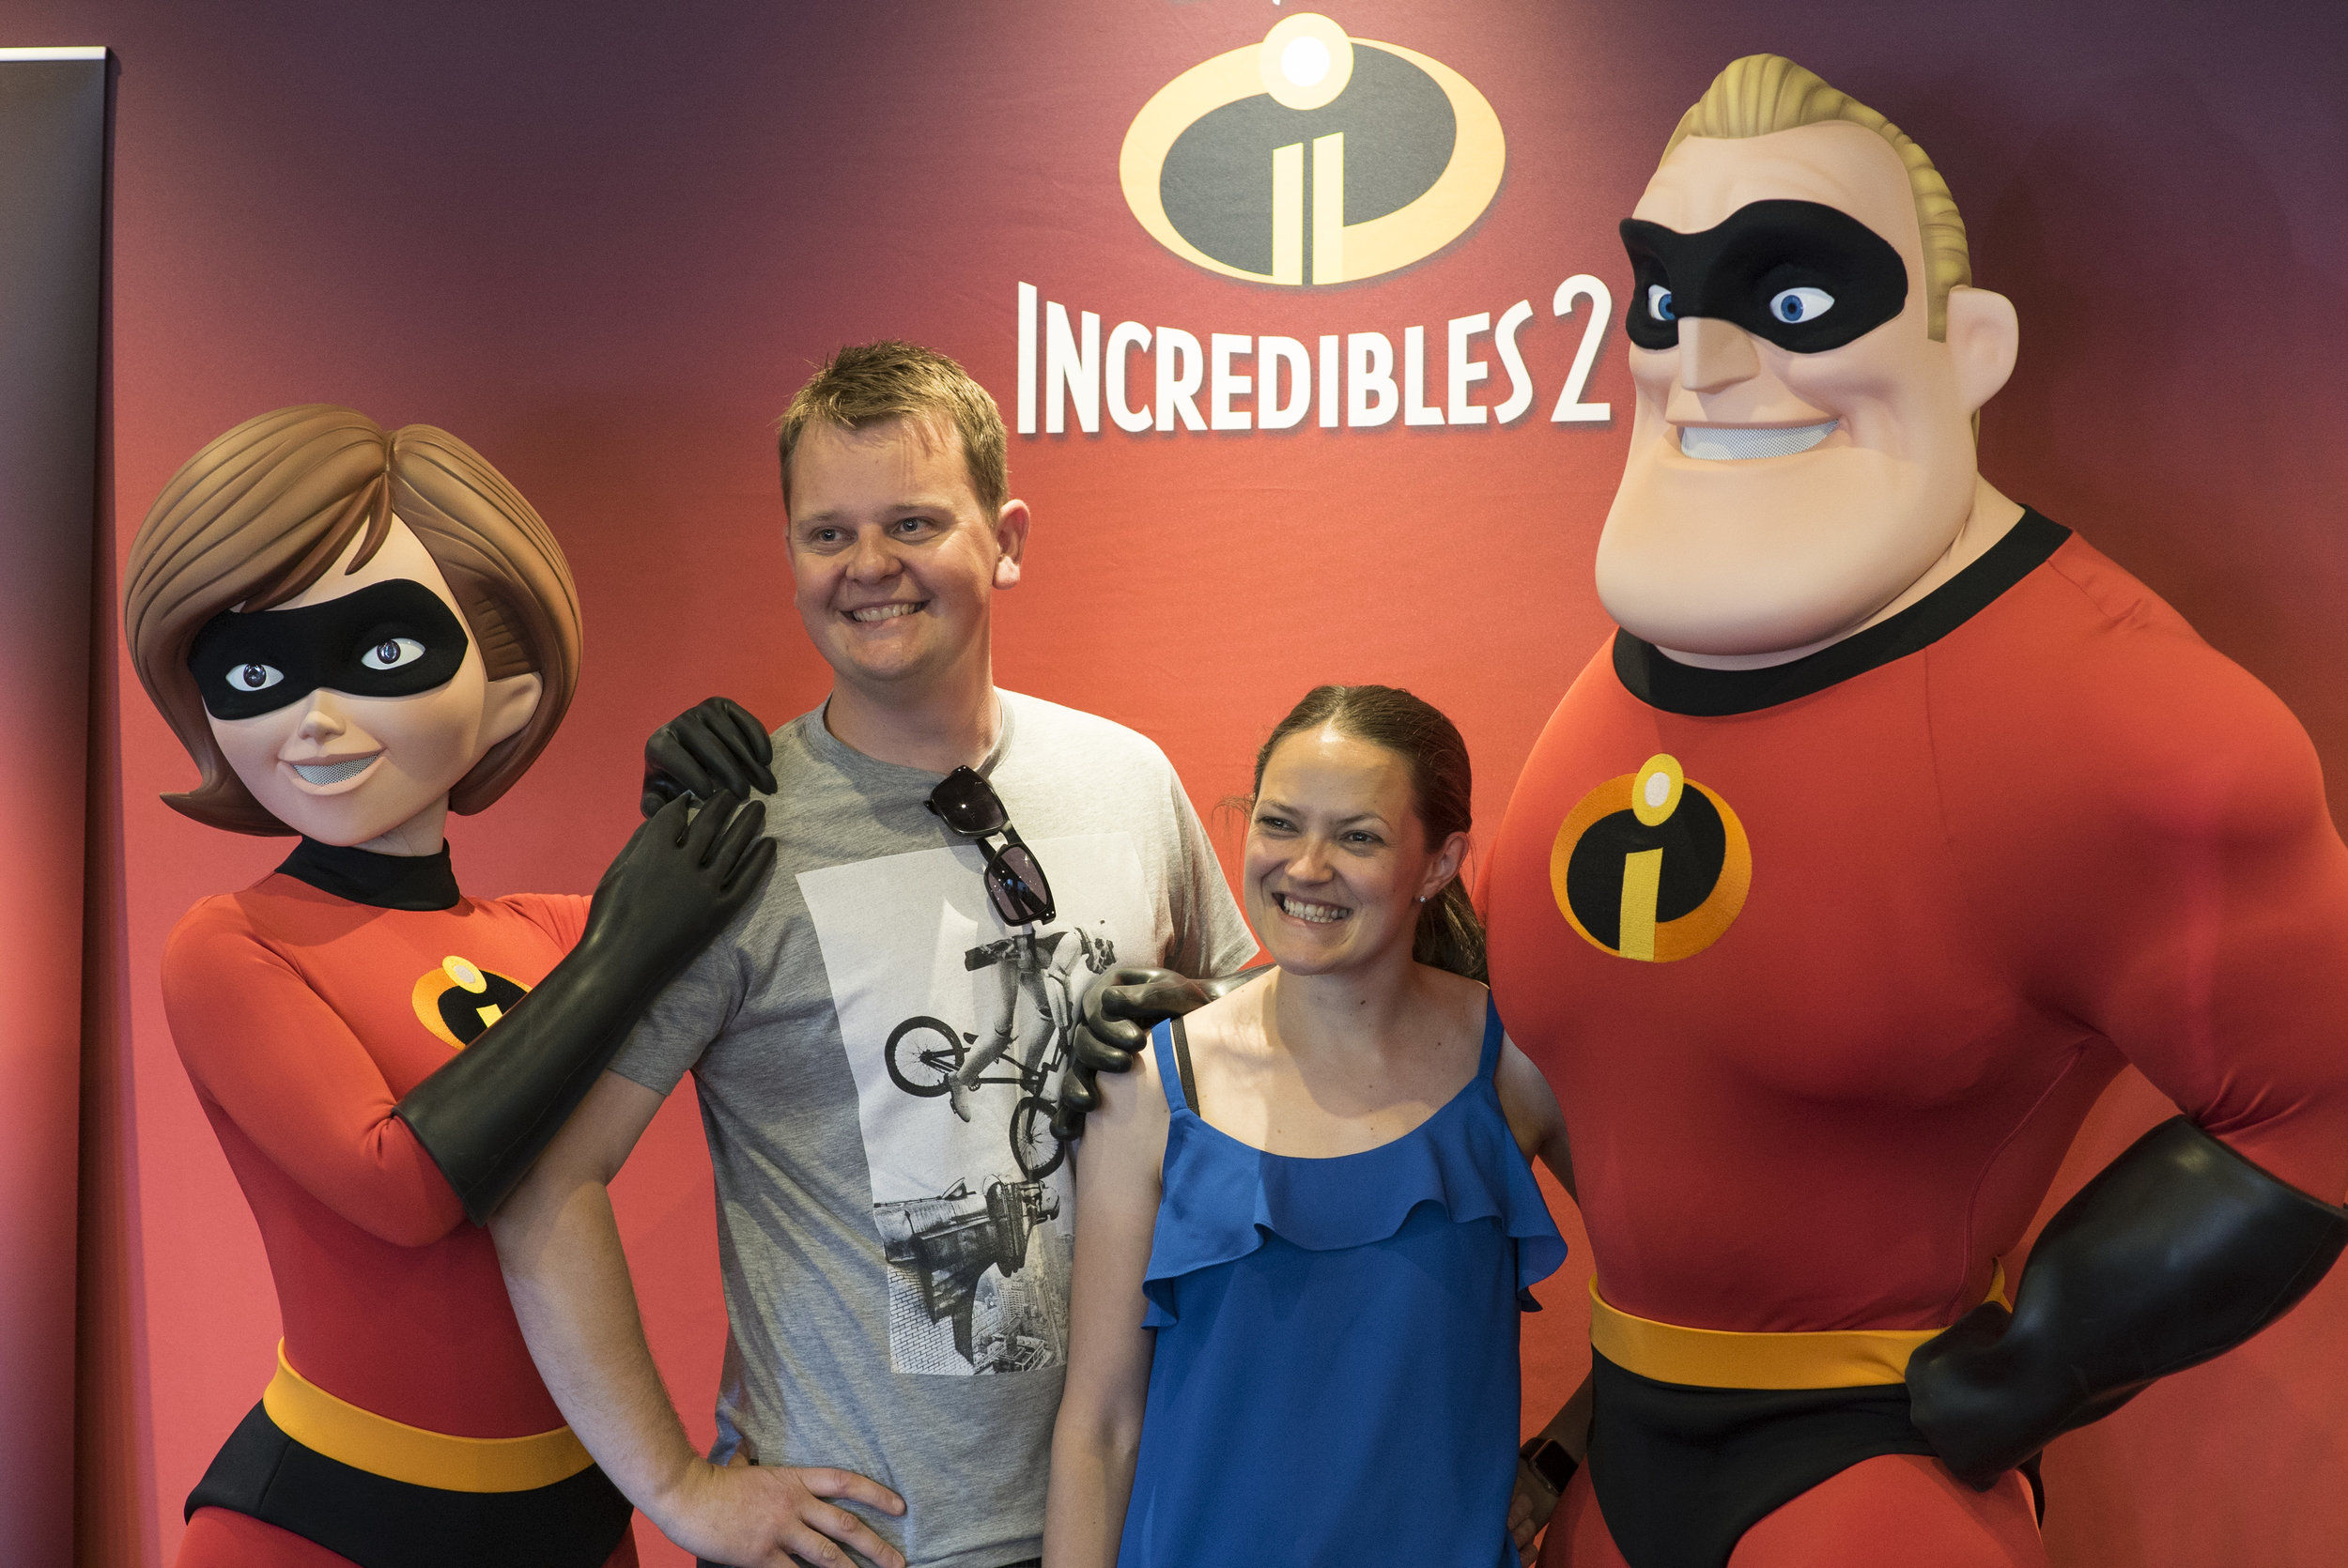 Incredibles_2_I_2018_06_24_GS_15.jpg